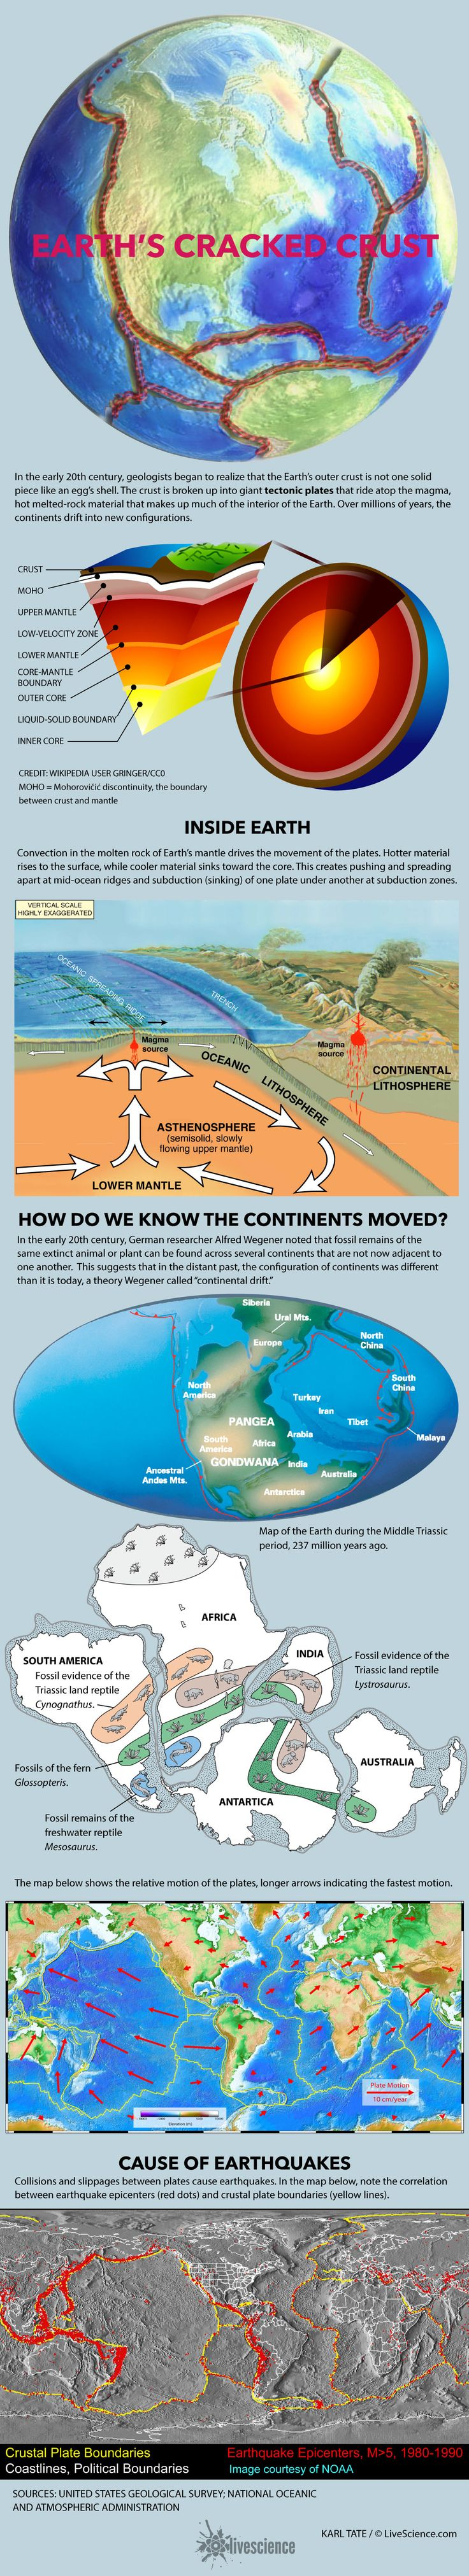 Plate Tectonics And Continental Drift (infographic)